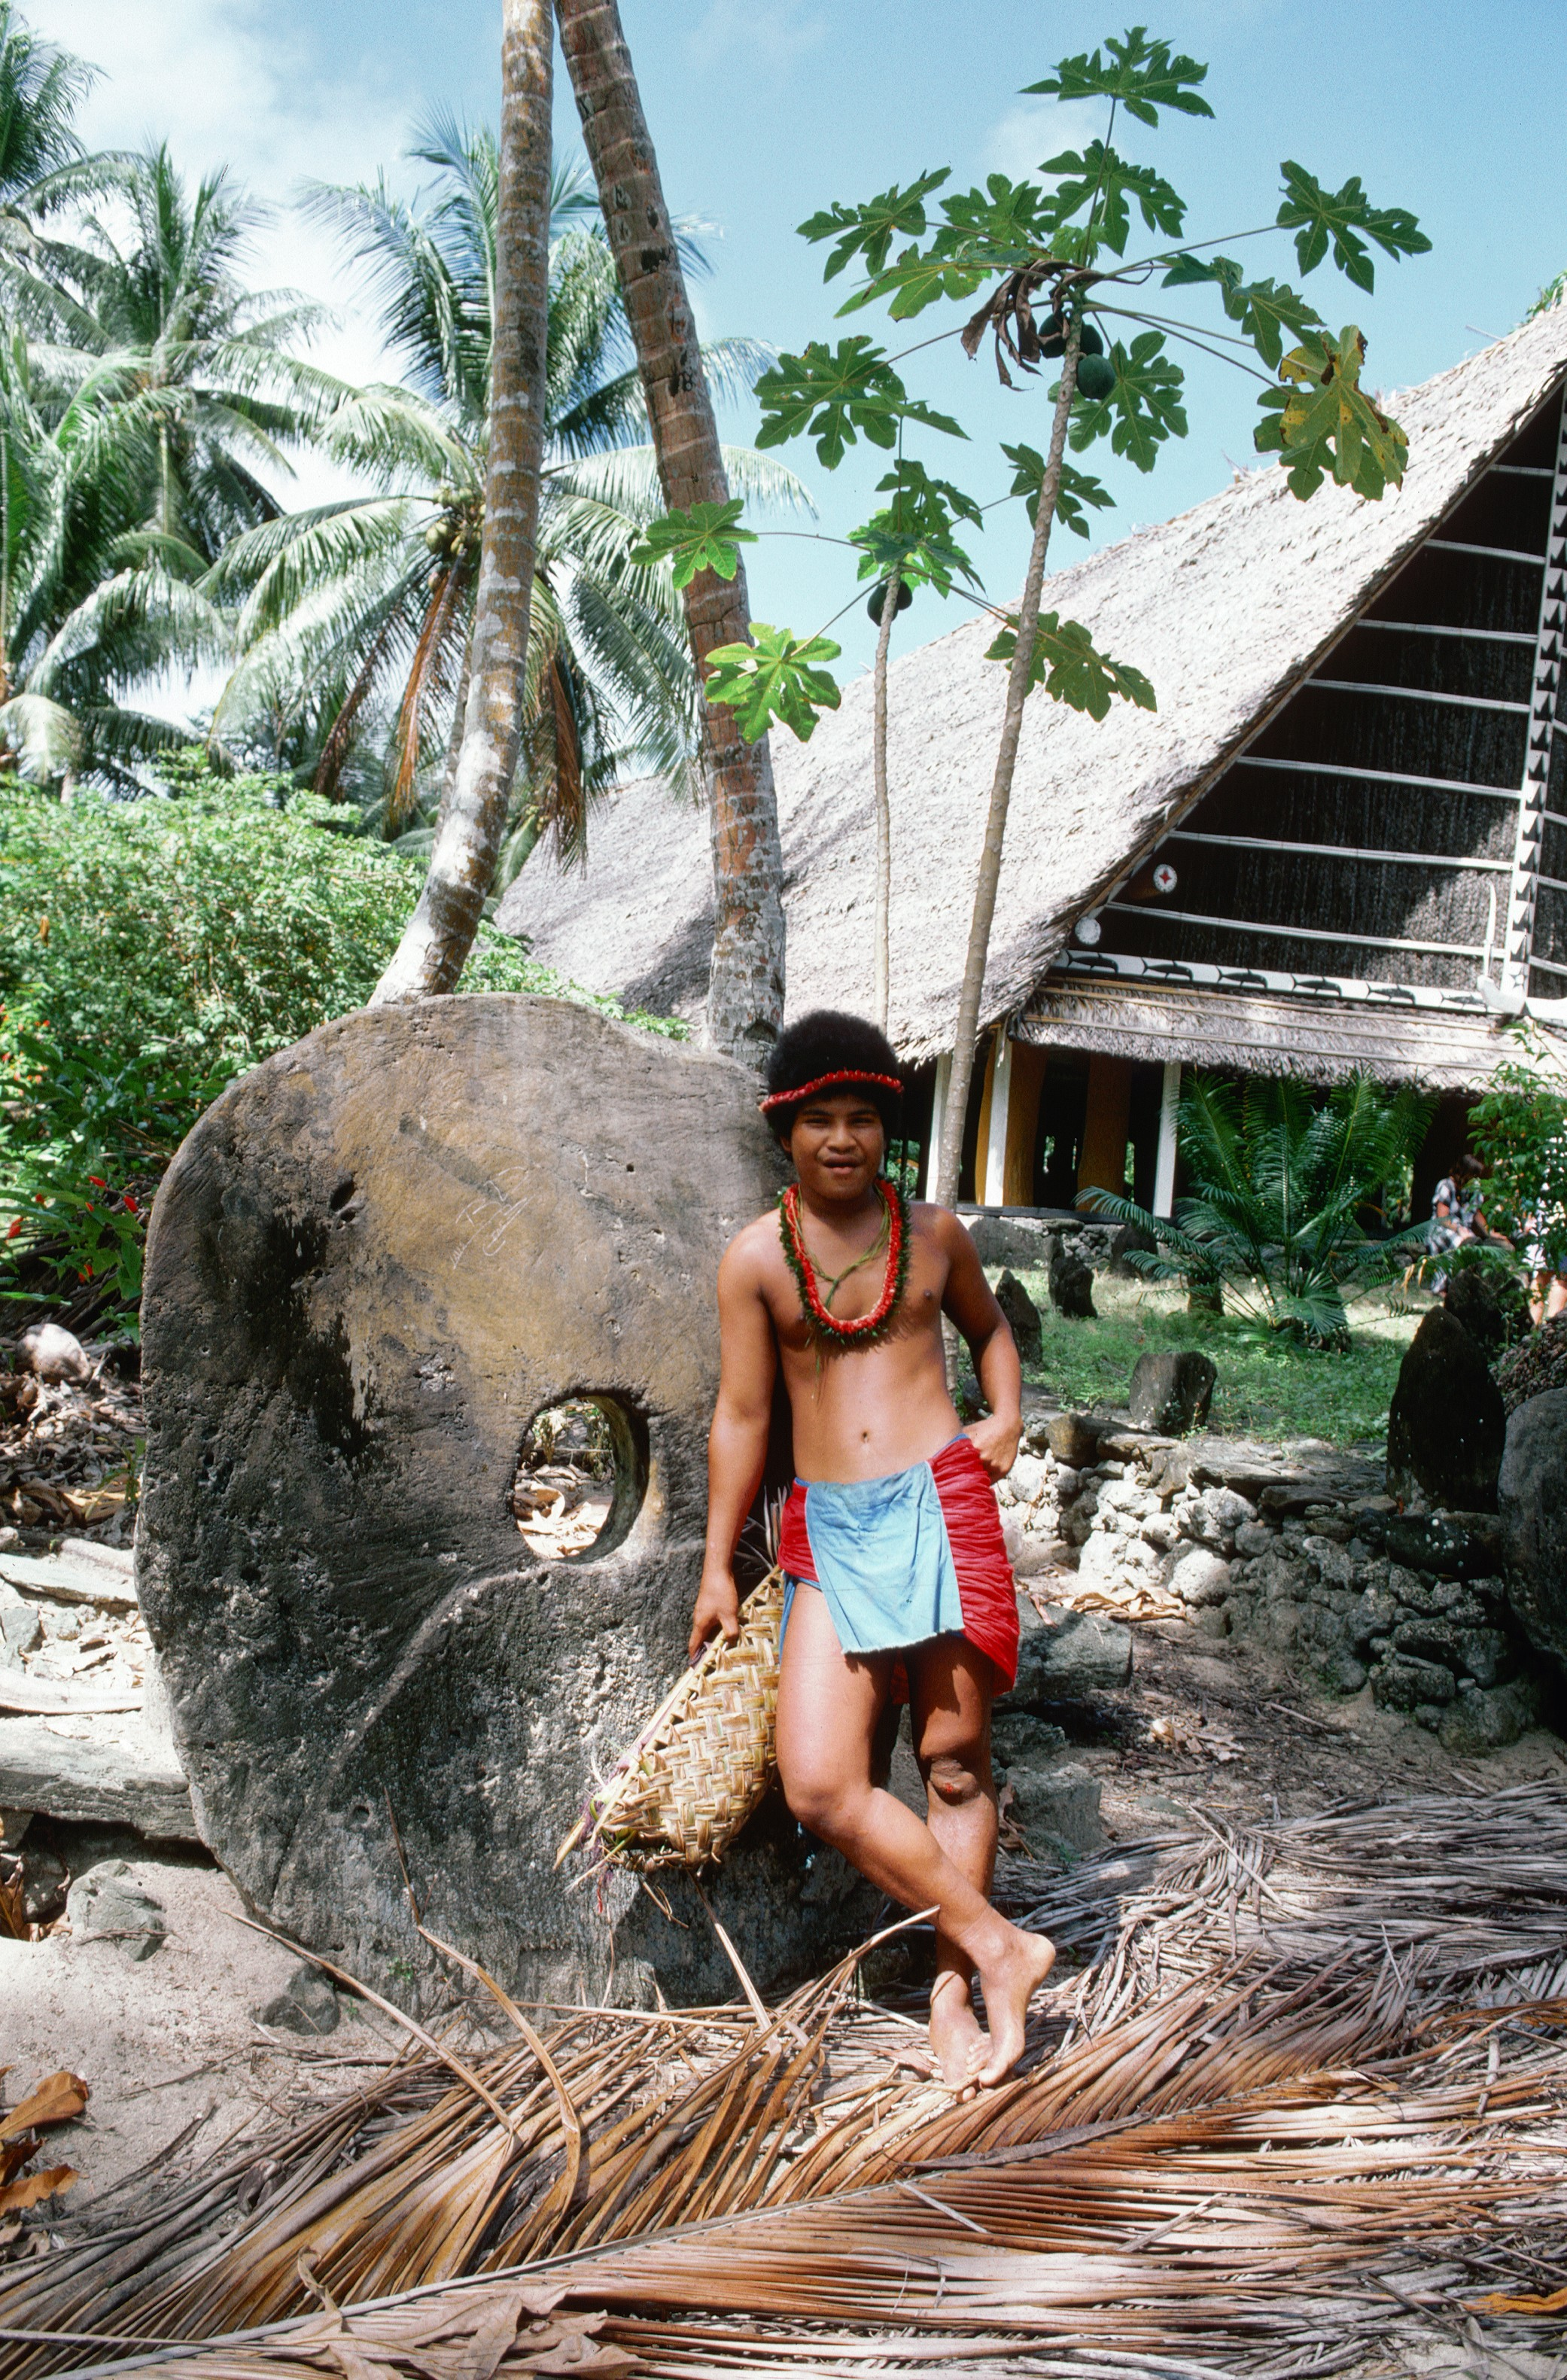 An islander boy leans against traditional stone money in front of a traditional community house on Micronesia's Maap Island. Photo © Wolfgang Kaehler/CORBIS